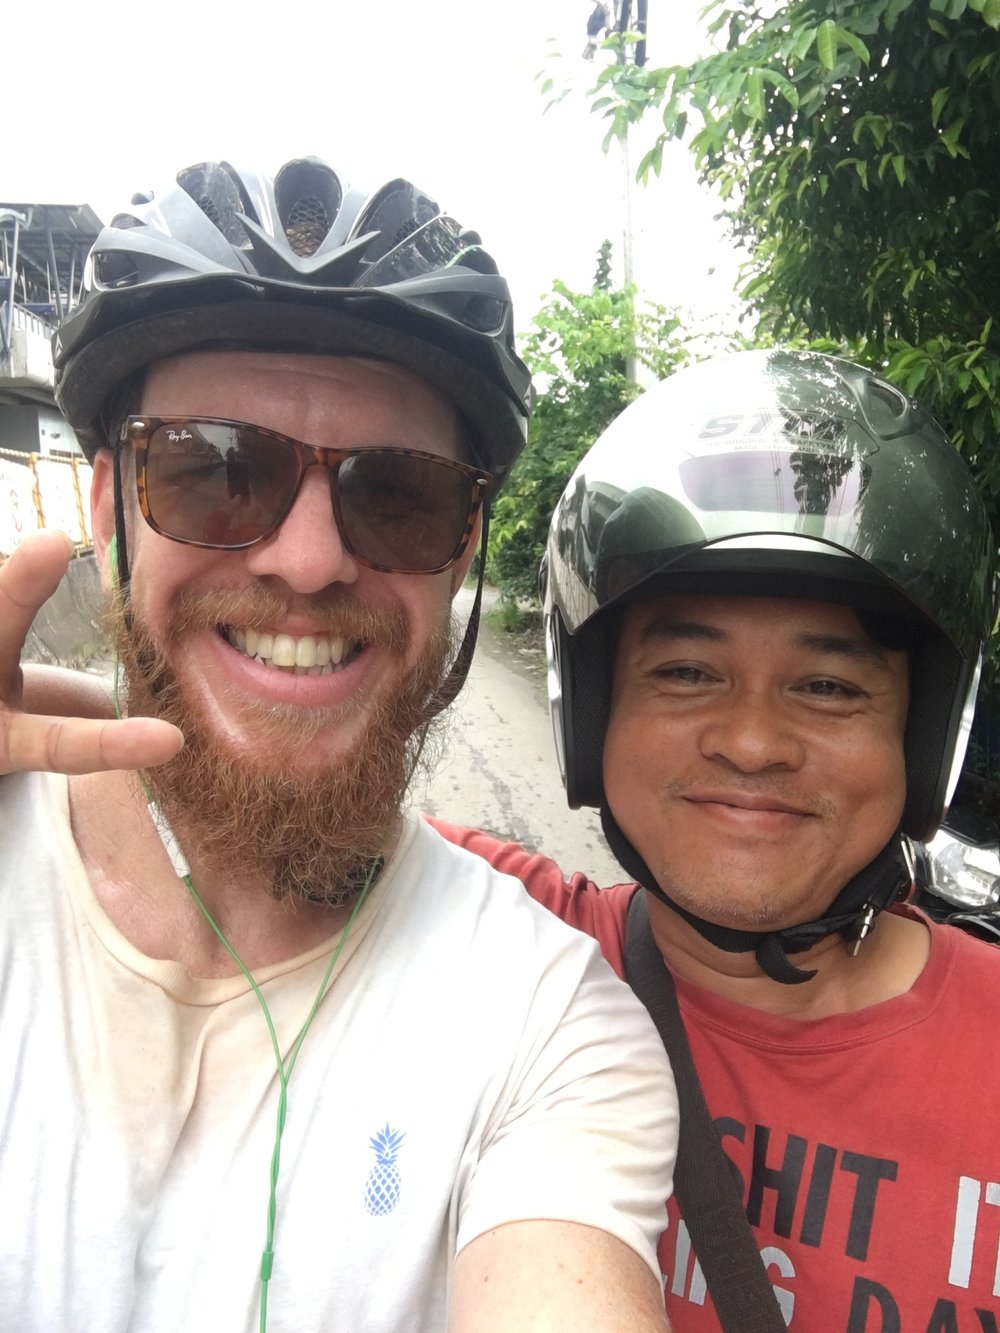 Friendly guy on a back street in BKK. He guided me through a very large puddle, which, if I'd tried to cycle through on my own, would have ended in complete and utter failure.